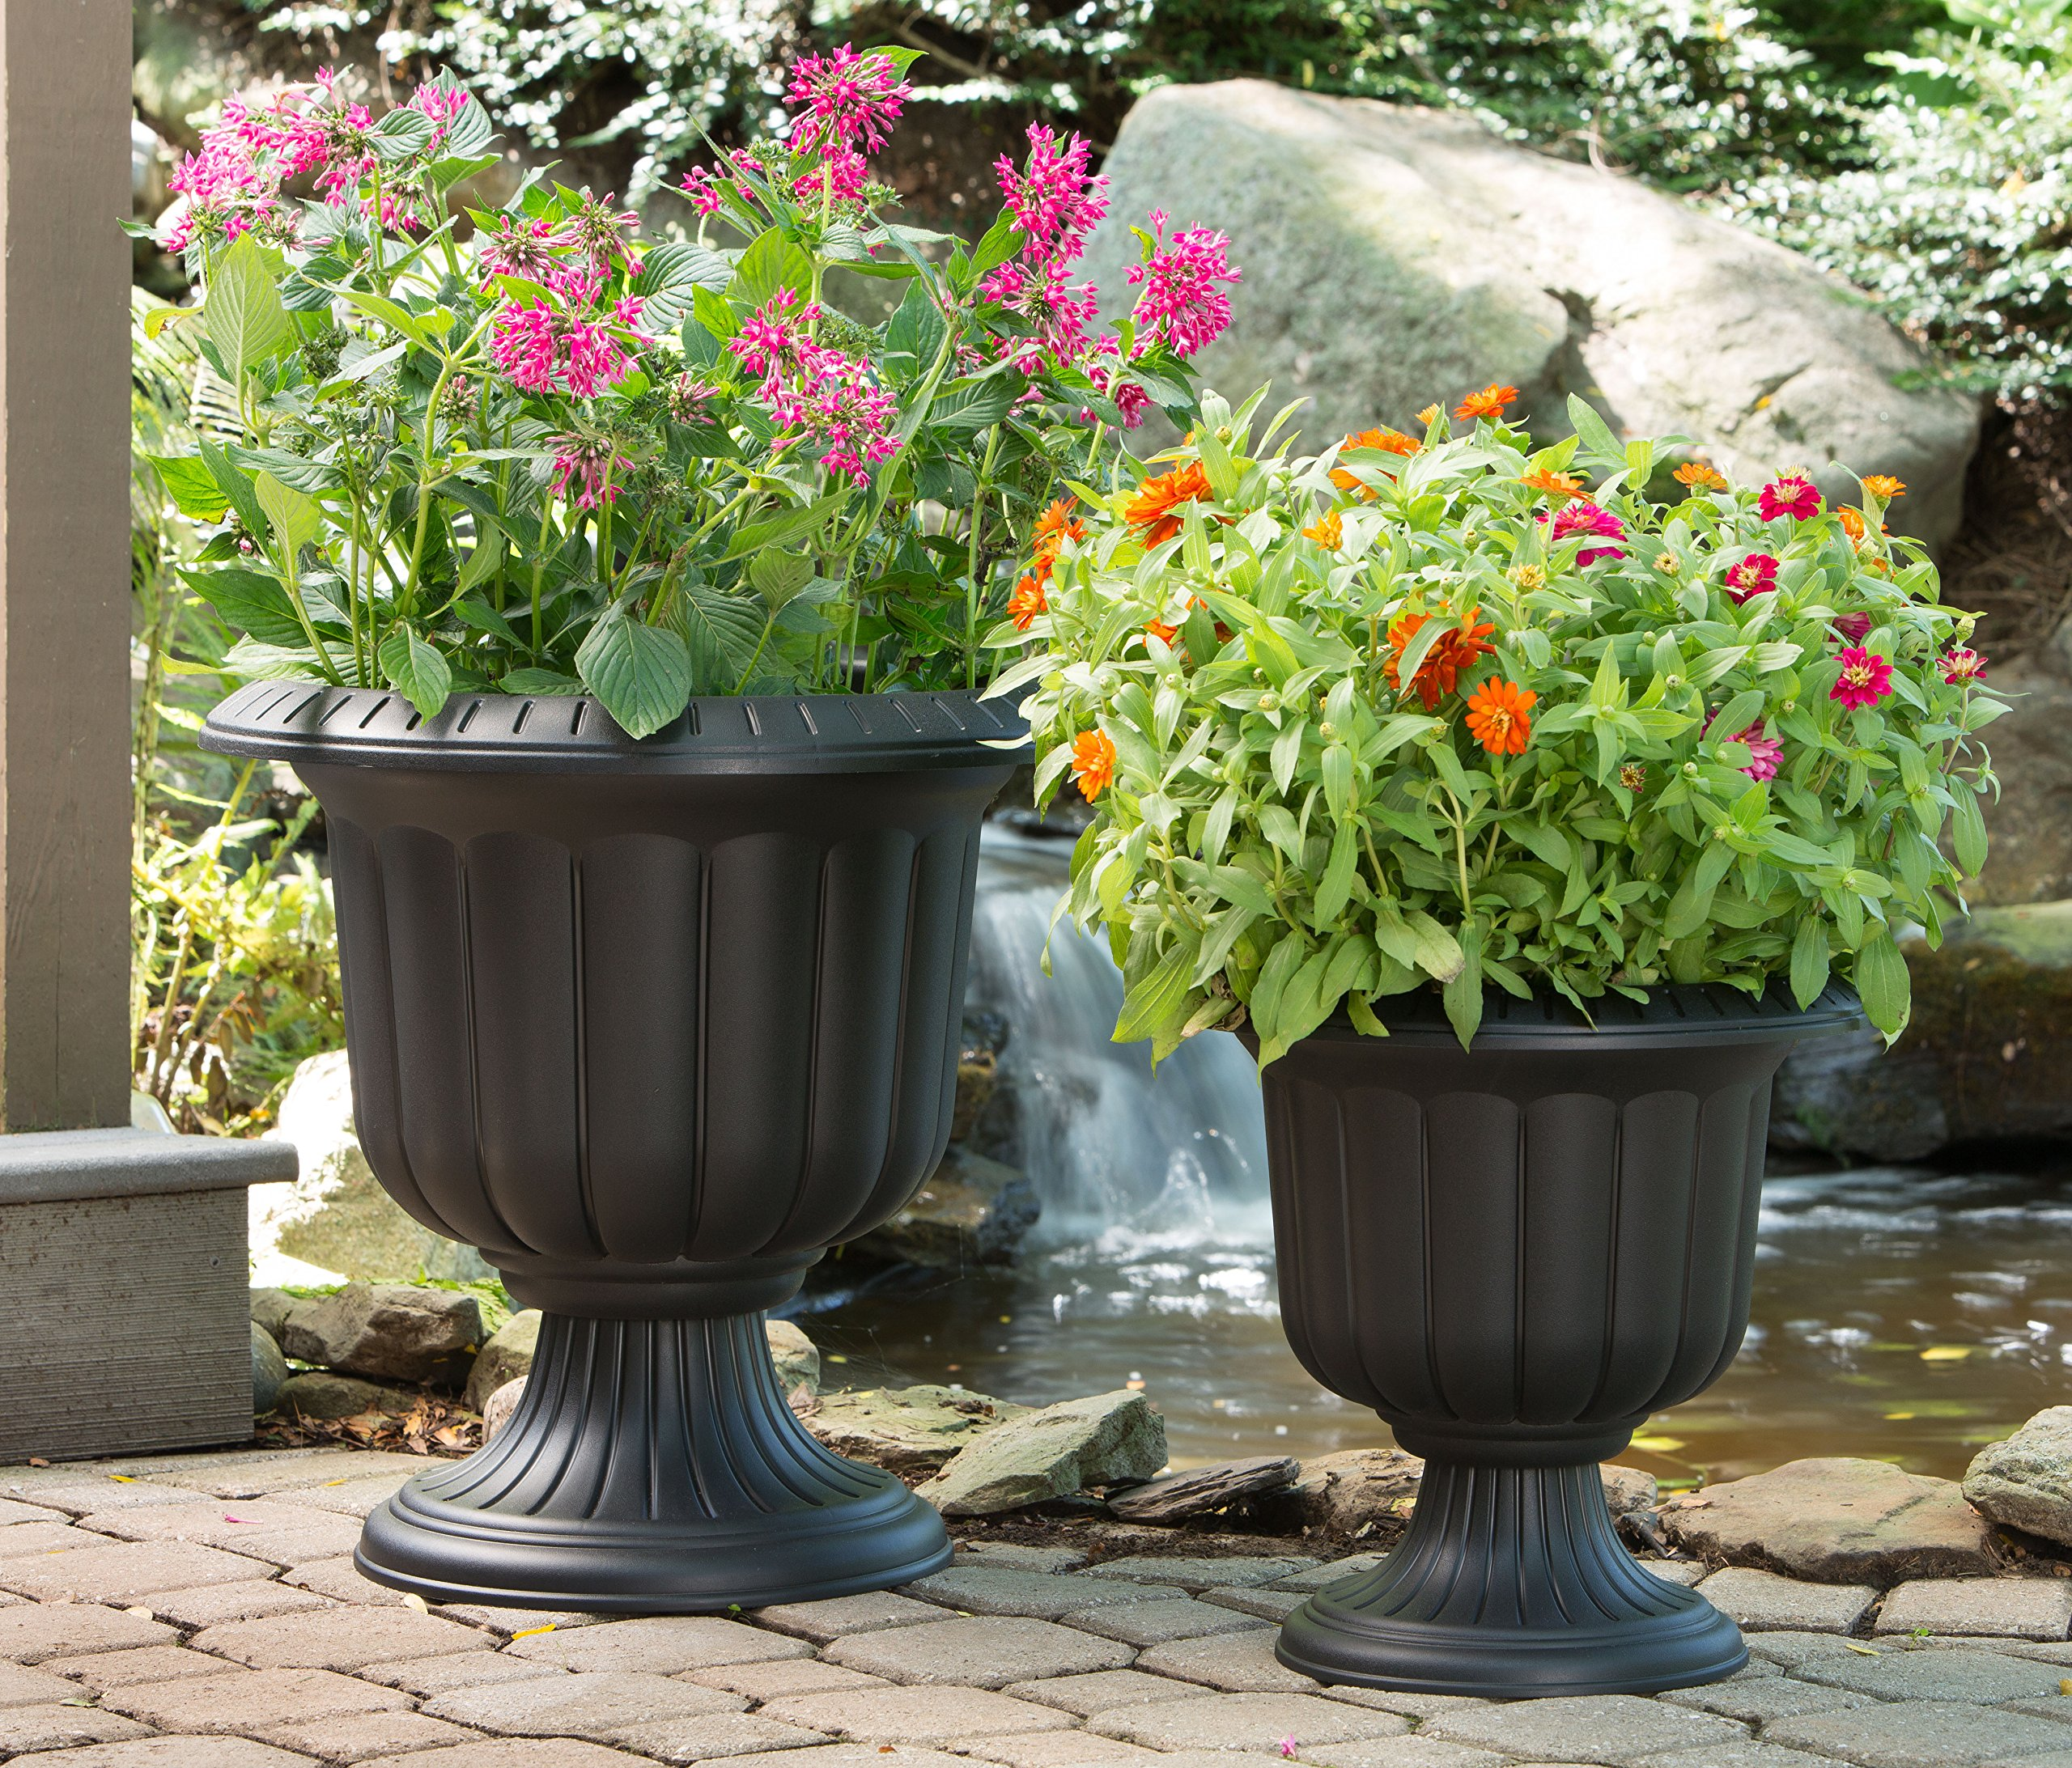 Novelty 38198.03 Classic Urn Planter, Black, 19-Inch by Novelty